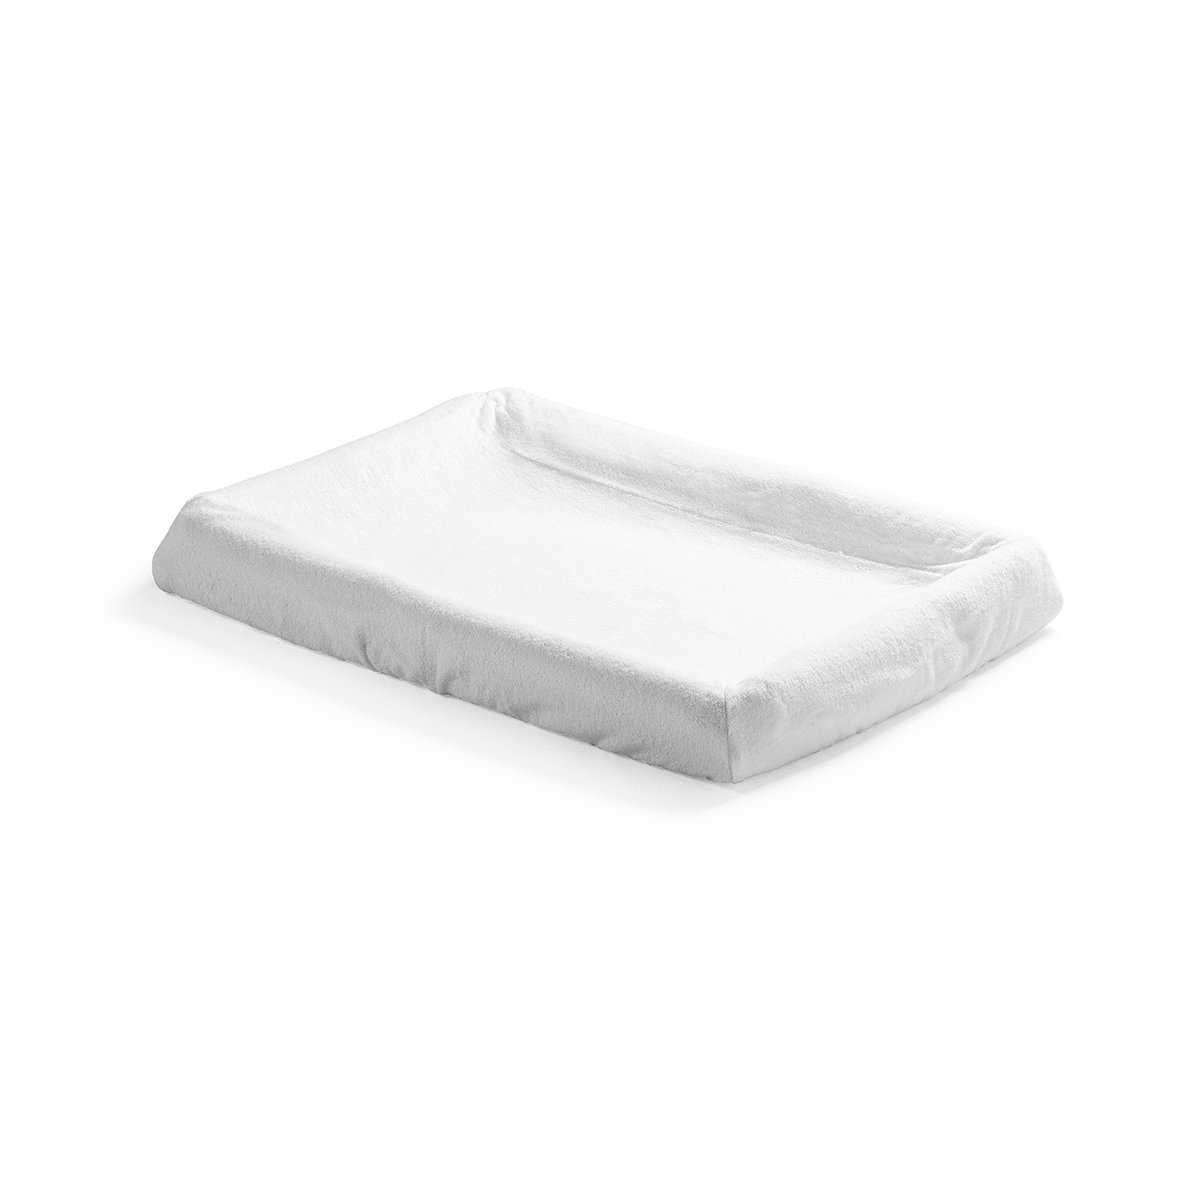 Changer Mattress, Mattress Cover